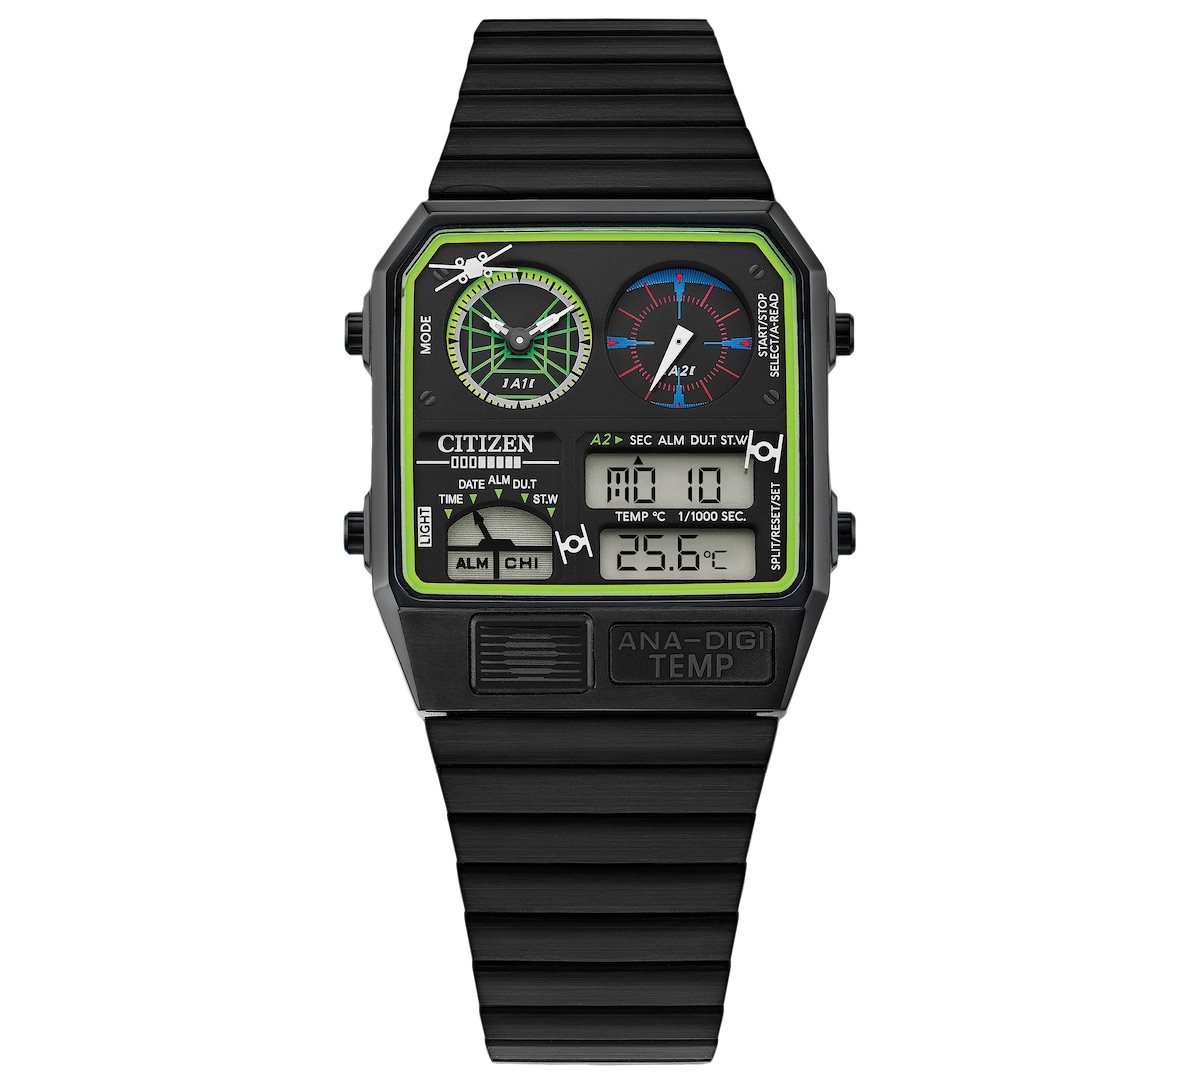 Trench Run Ana-Digi watch by Citizen honors Star Wars characters.